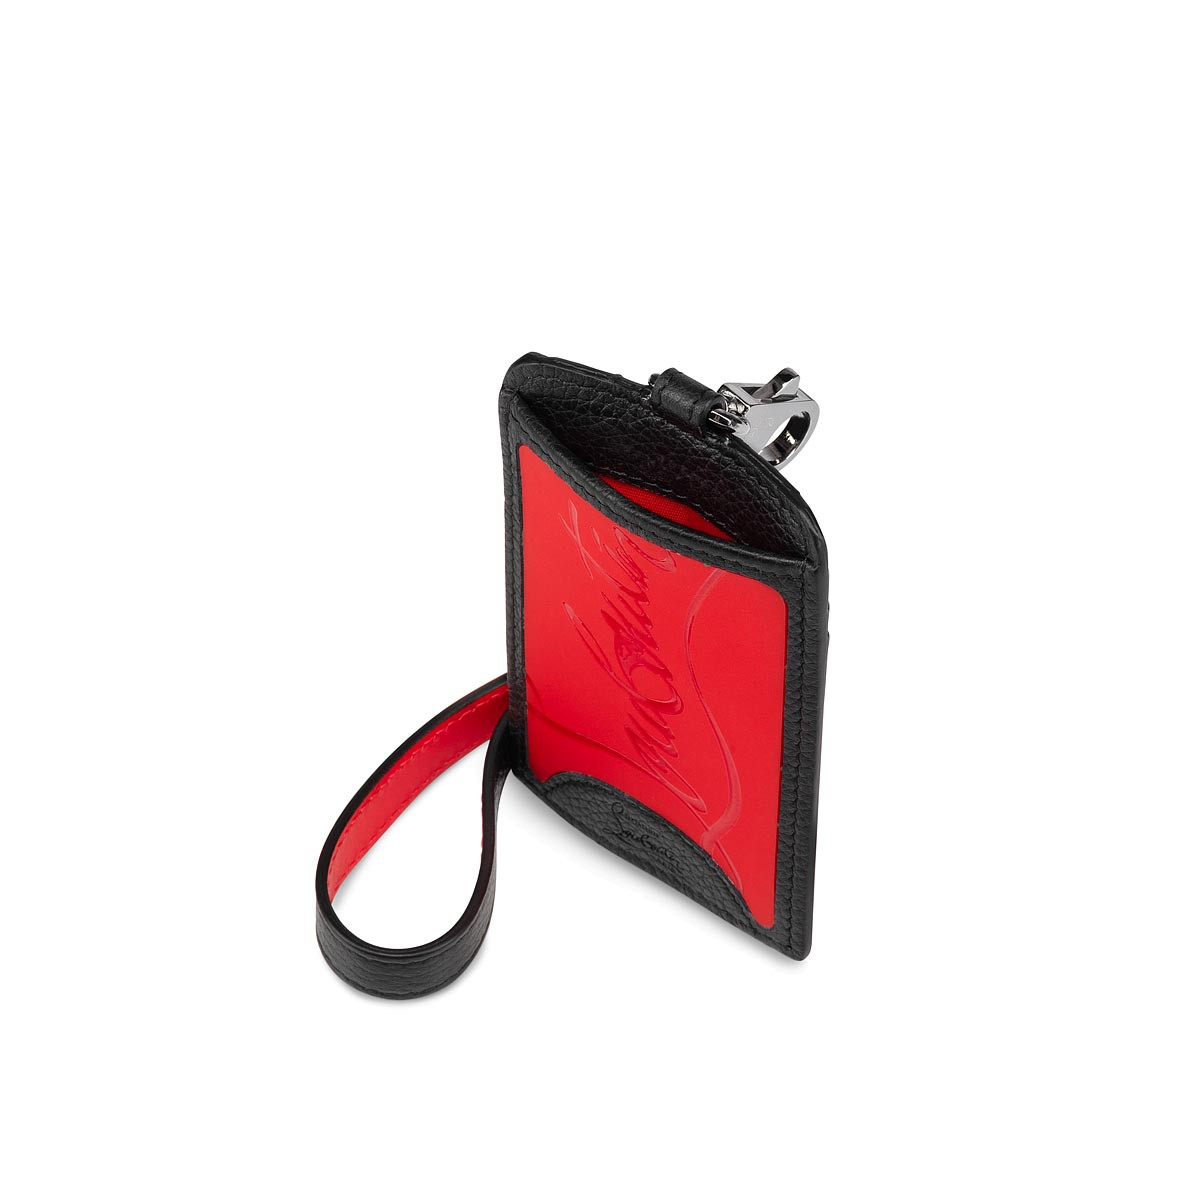 Small Leather Goods - M Miloucah - Christian Louboutin